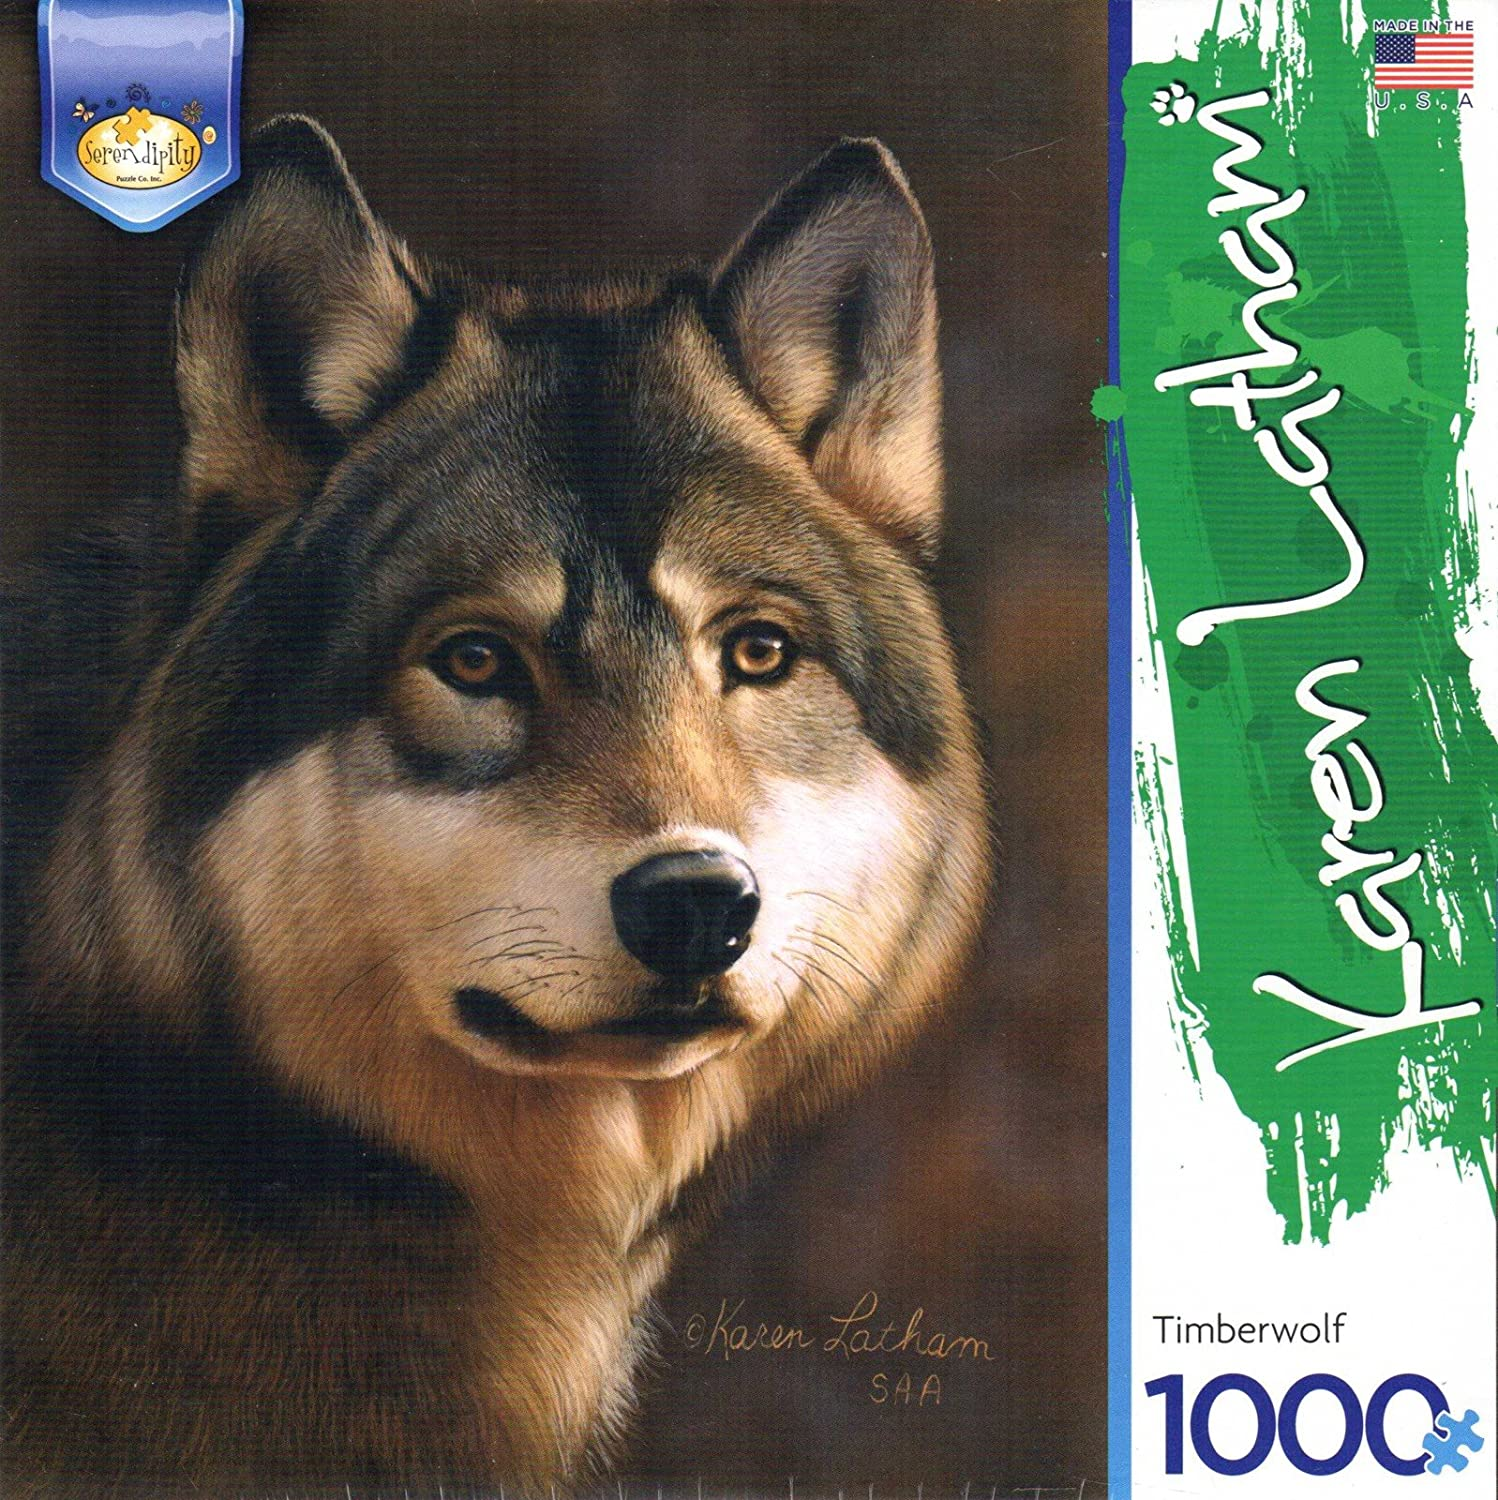 Timberwolf by Serendipity Puzzle Co. Jigsaw Puzzle 1000 Pieces 17.25x26.5